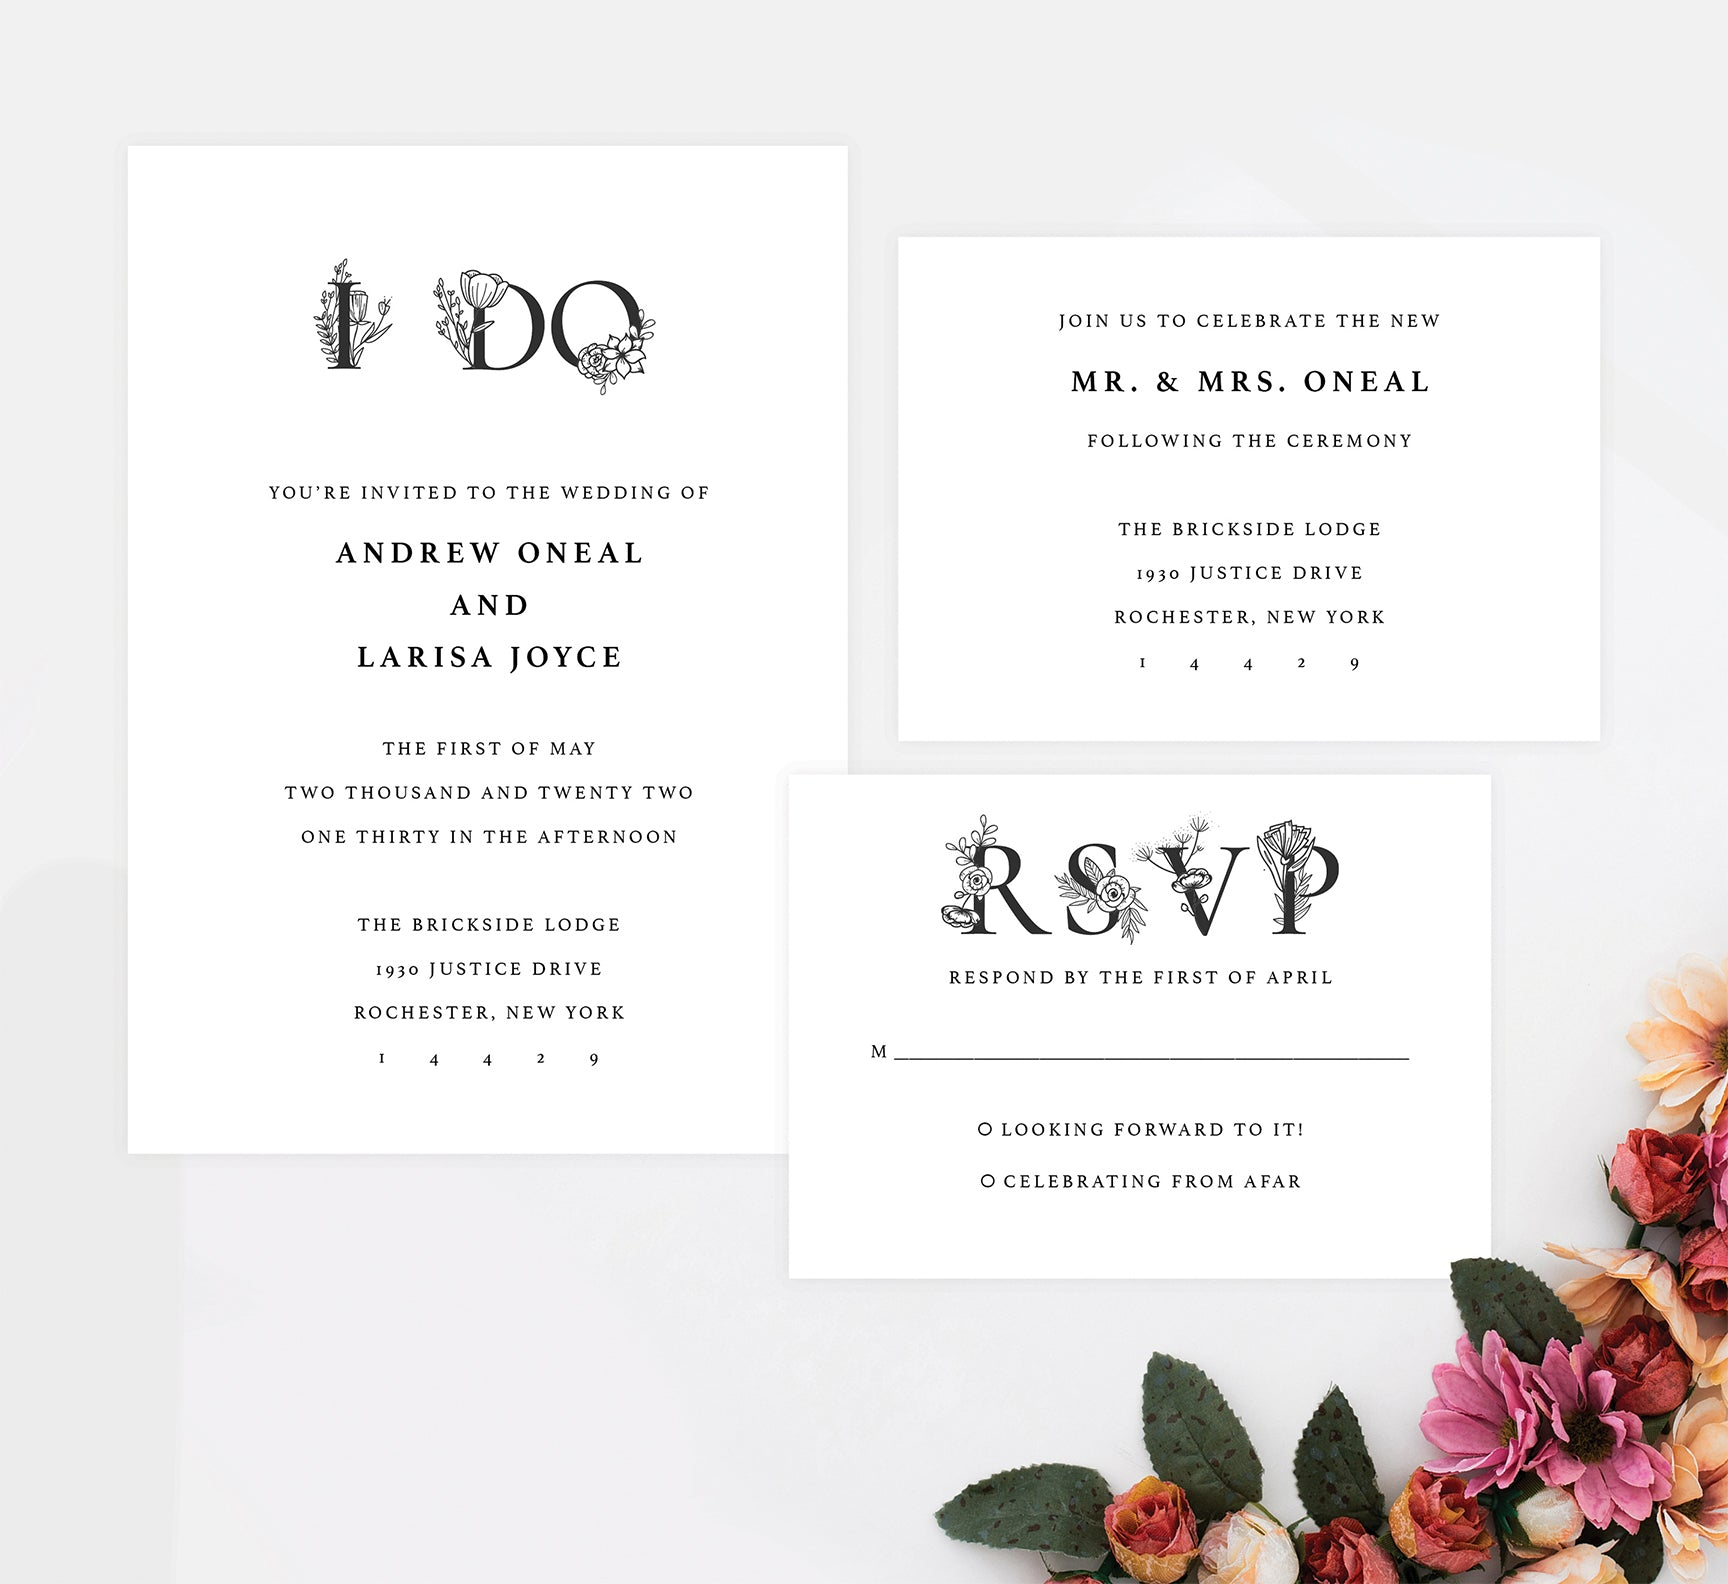 Floral Vows wedding invitation and set